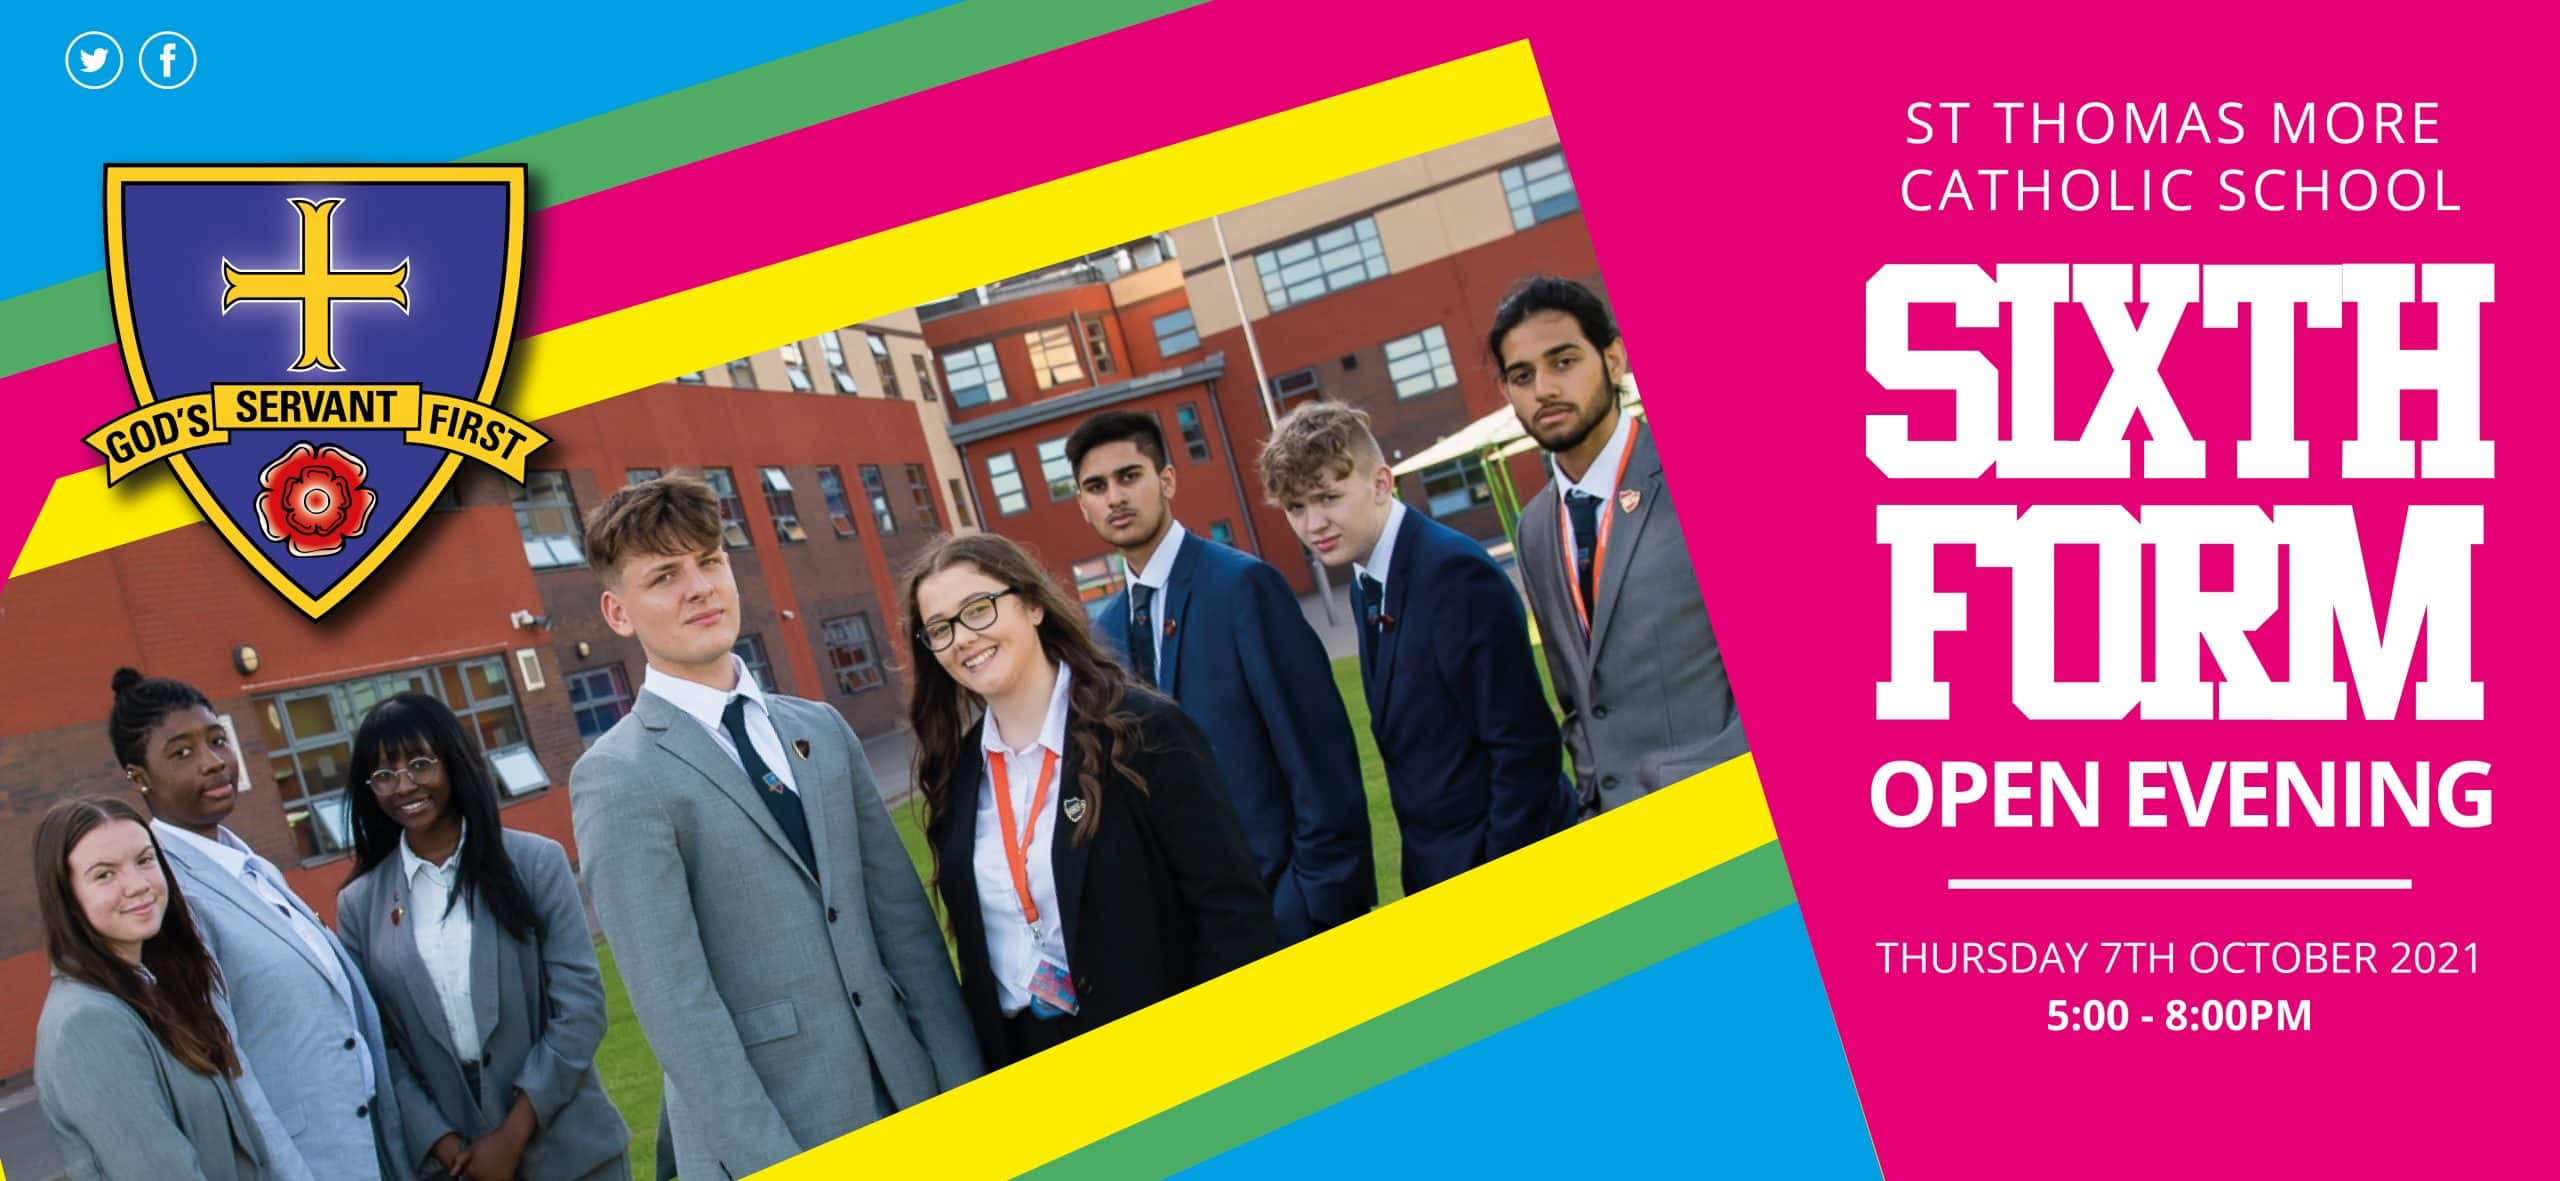 Sixth Form Open Evening - 7th October 2021